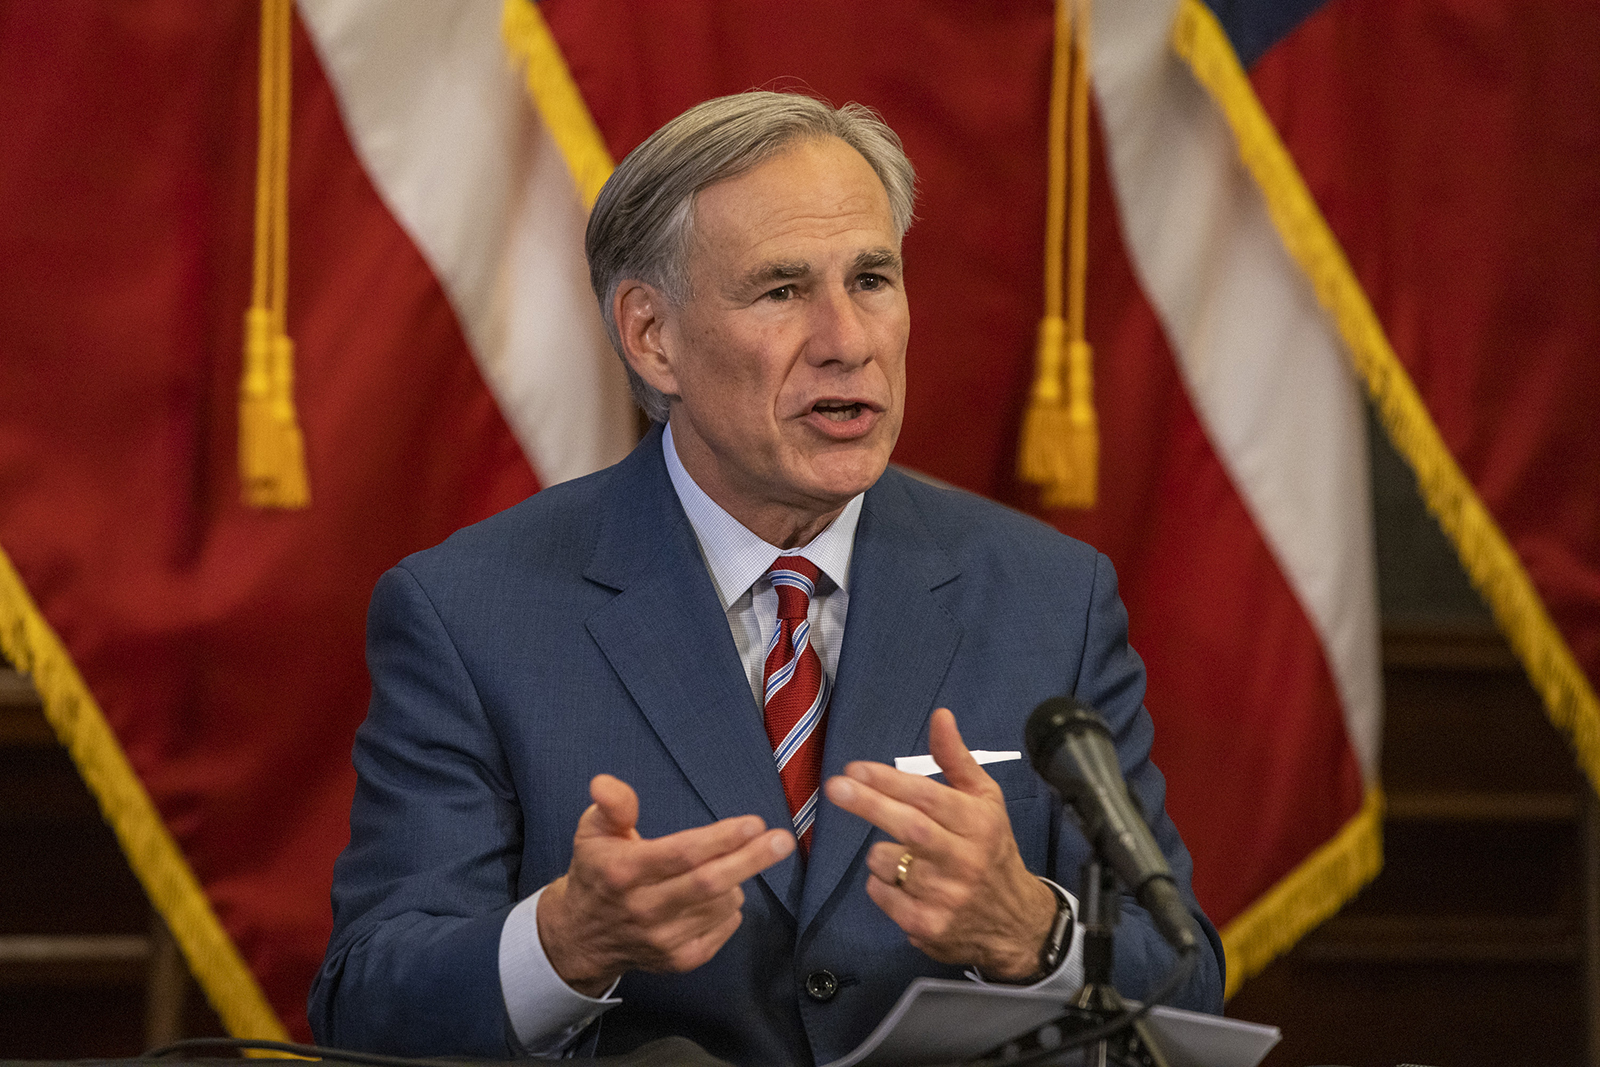 Texas Governor Greg Abbott announces the reopening of more Texas businesses during the Covid-19 pandemic at a press conference at the Texas State Capitol on May 18, 2020 in Austin, Texas.